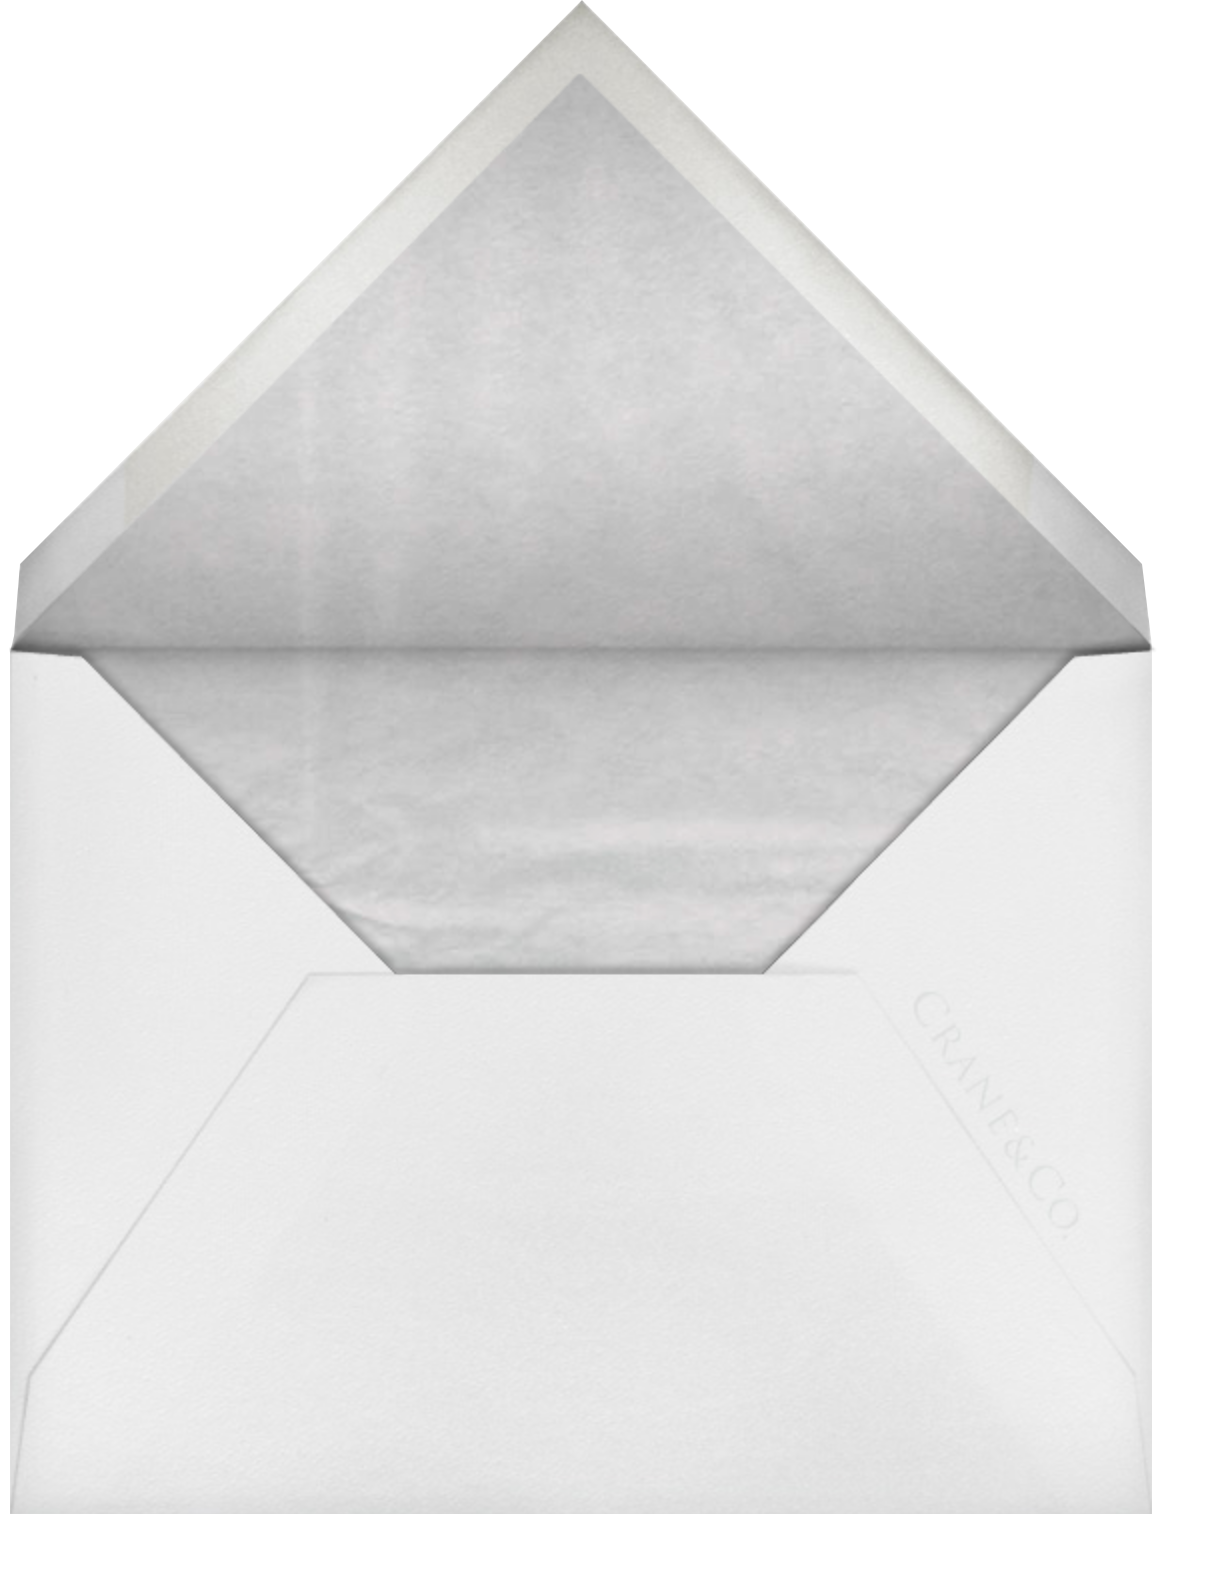 Kayitz I (Save the Date) - Platinum - Paperless Post - Save the date - envelope back